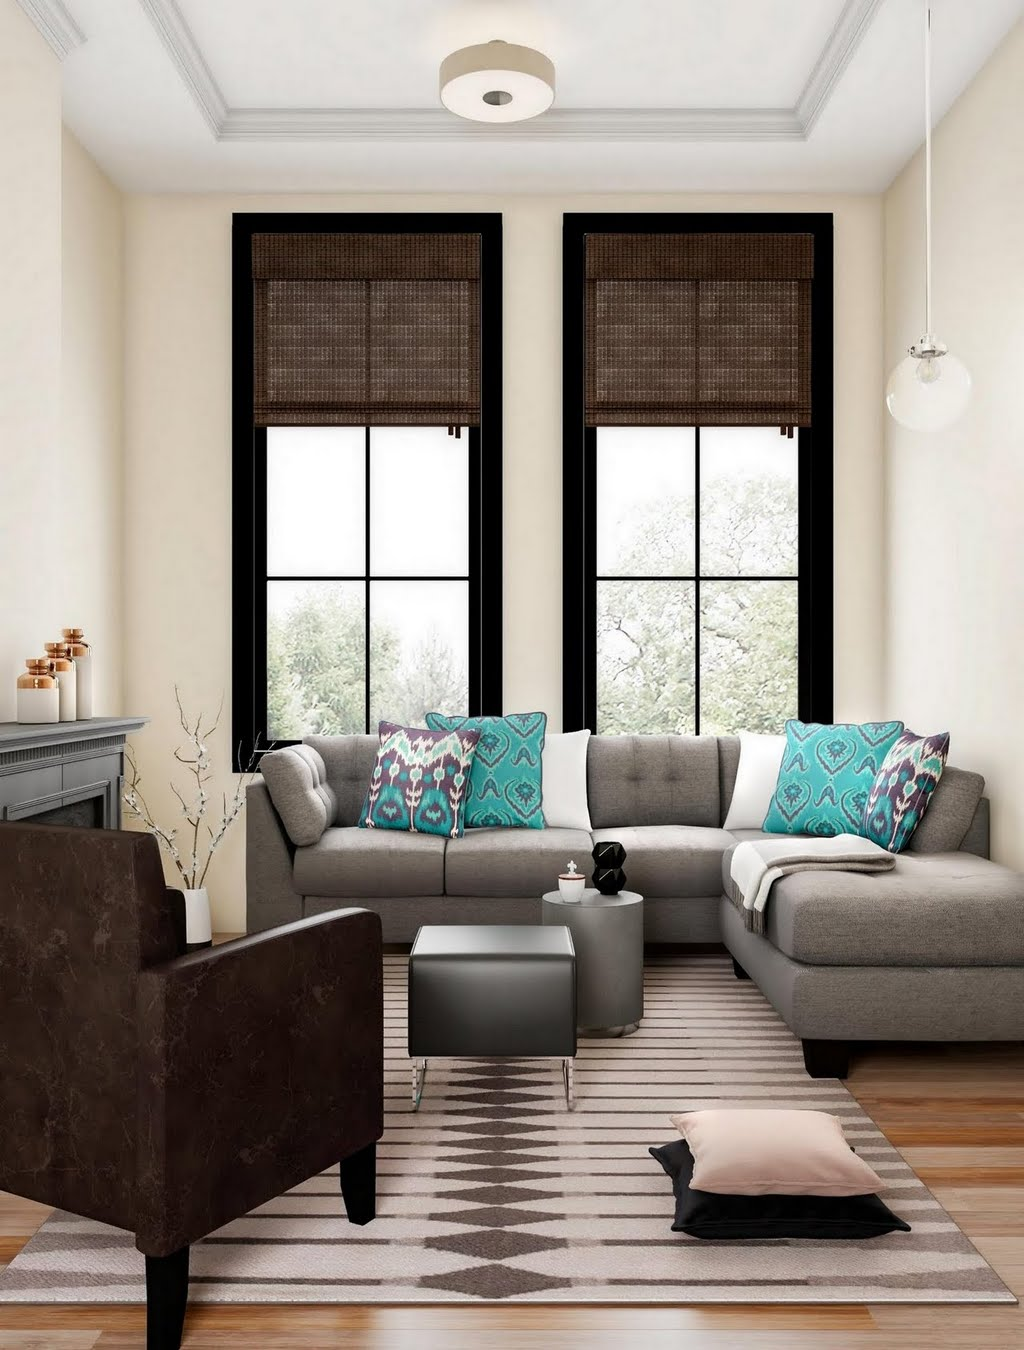 Georgian Living Room With Turquoise Accents The Home Depot